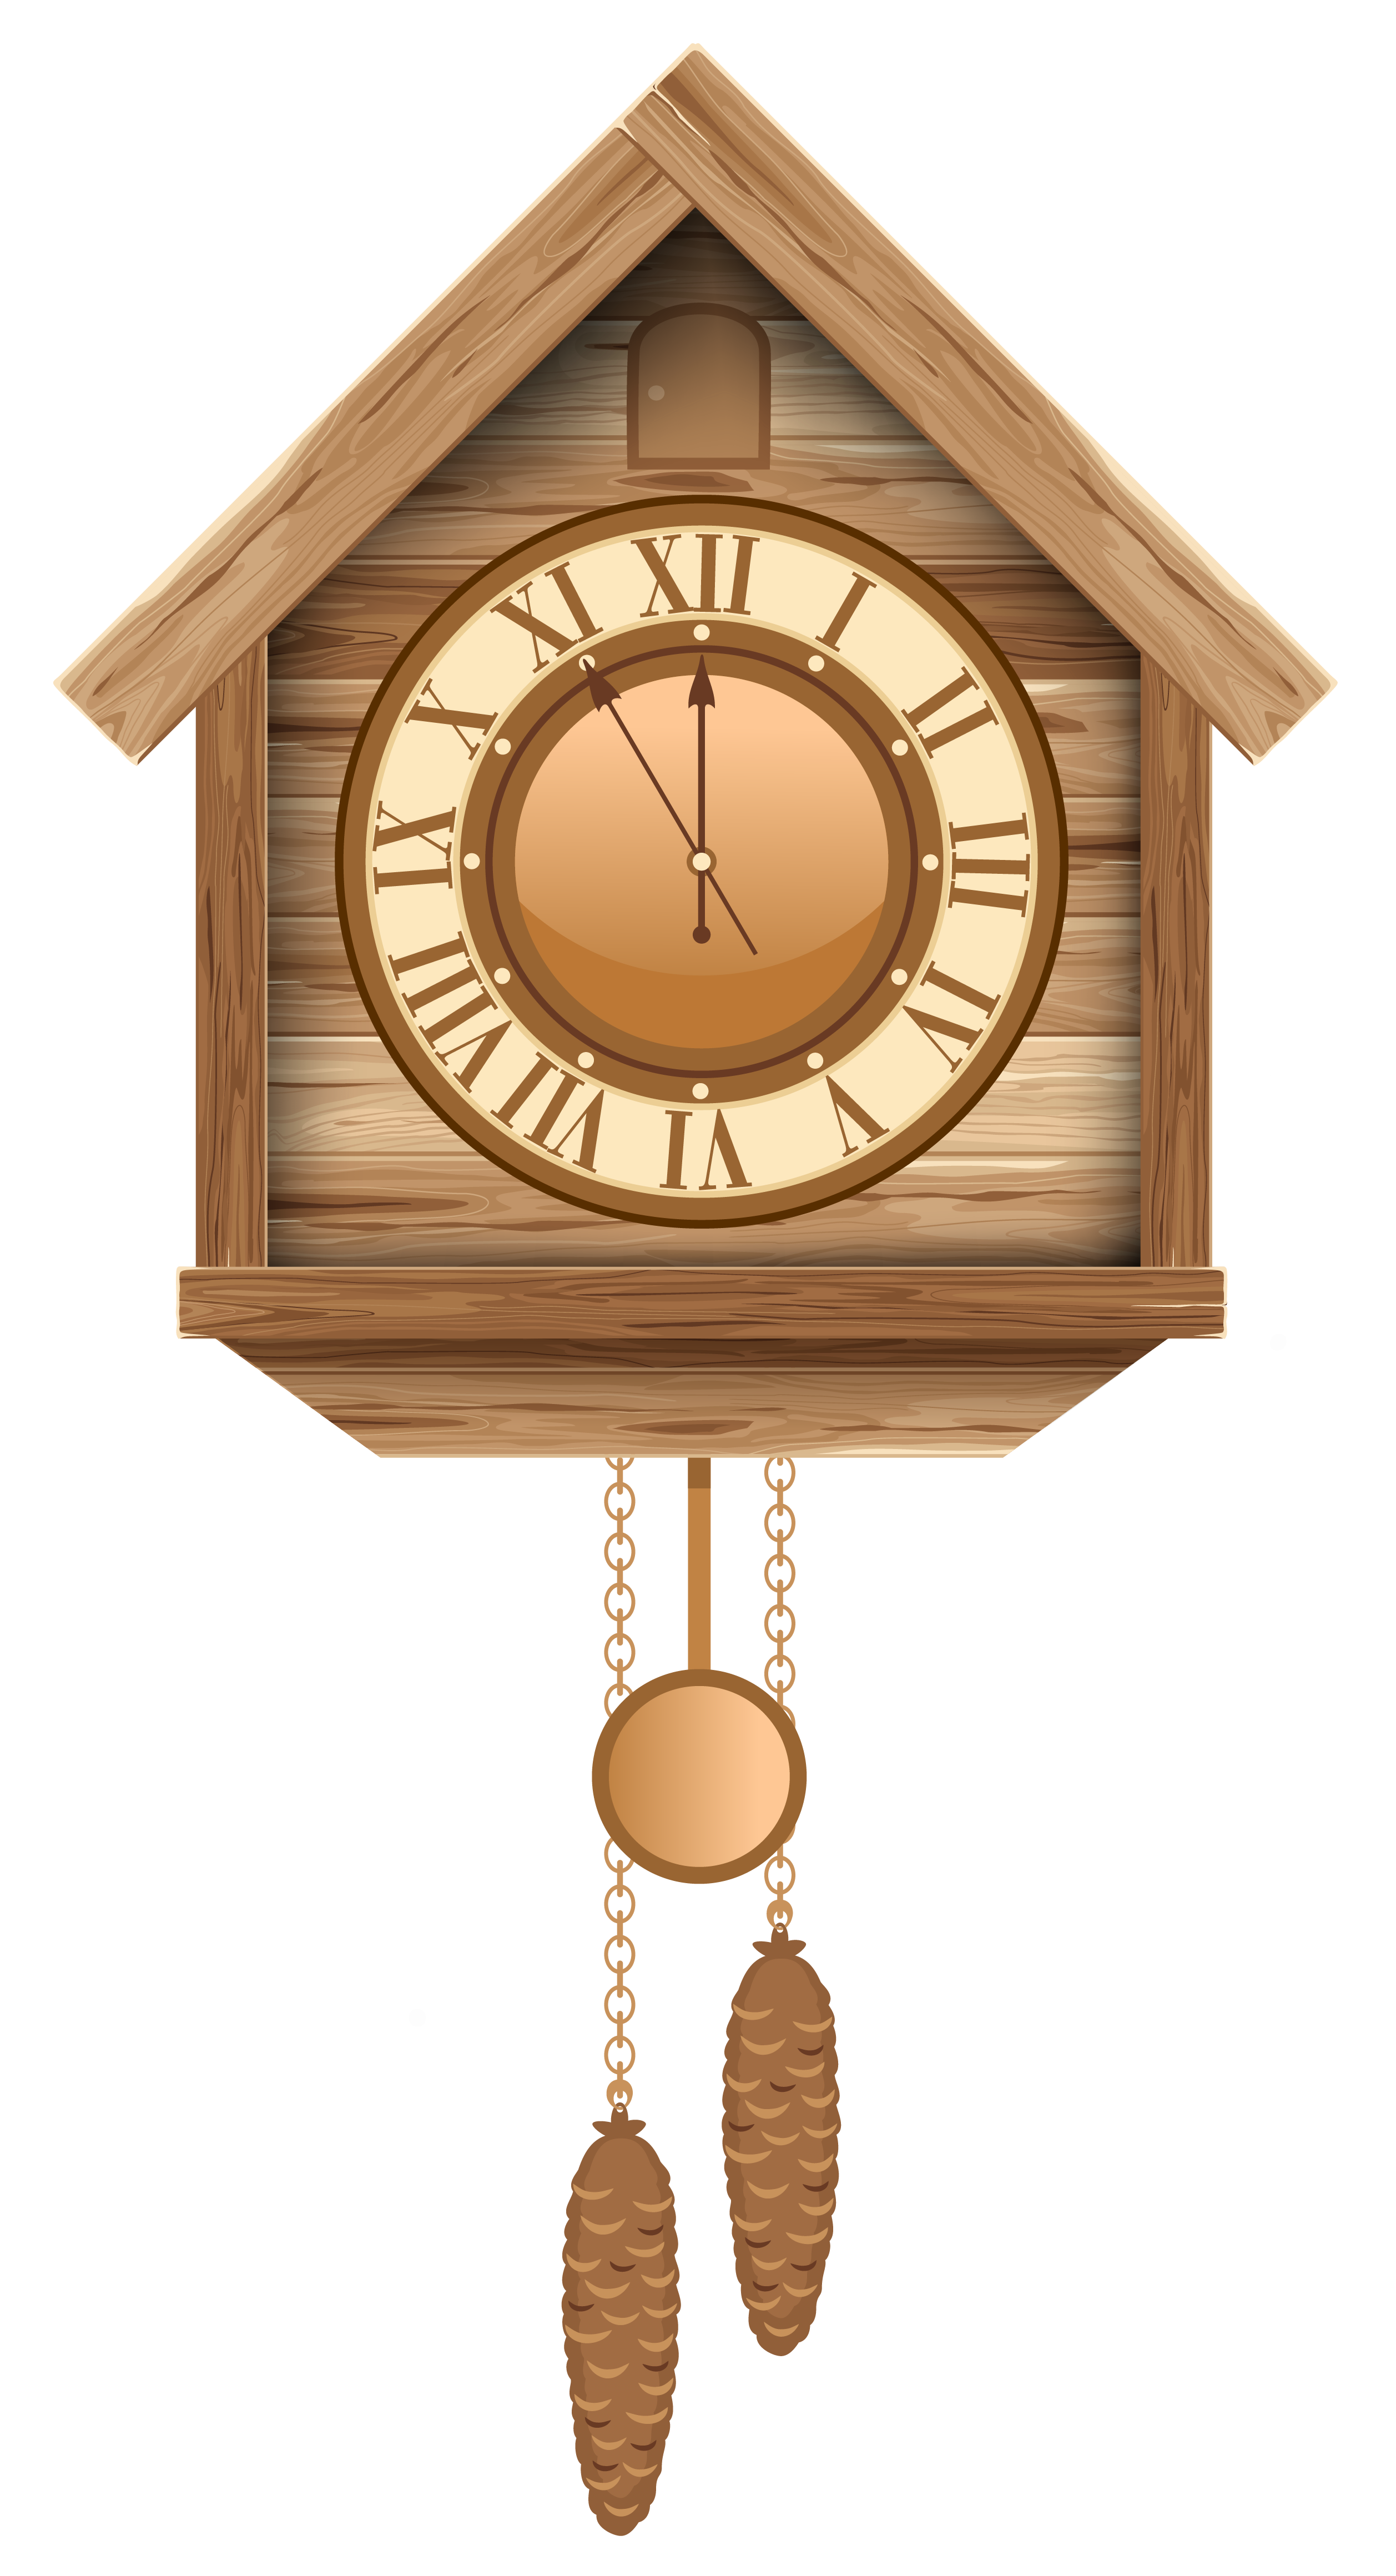 graphic free Clock pencil and in. Clocks clipart dog.